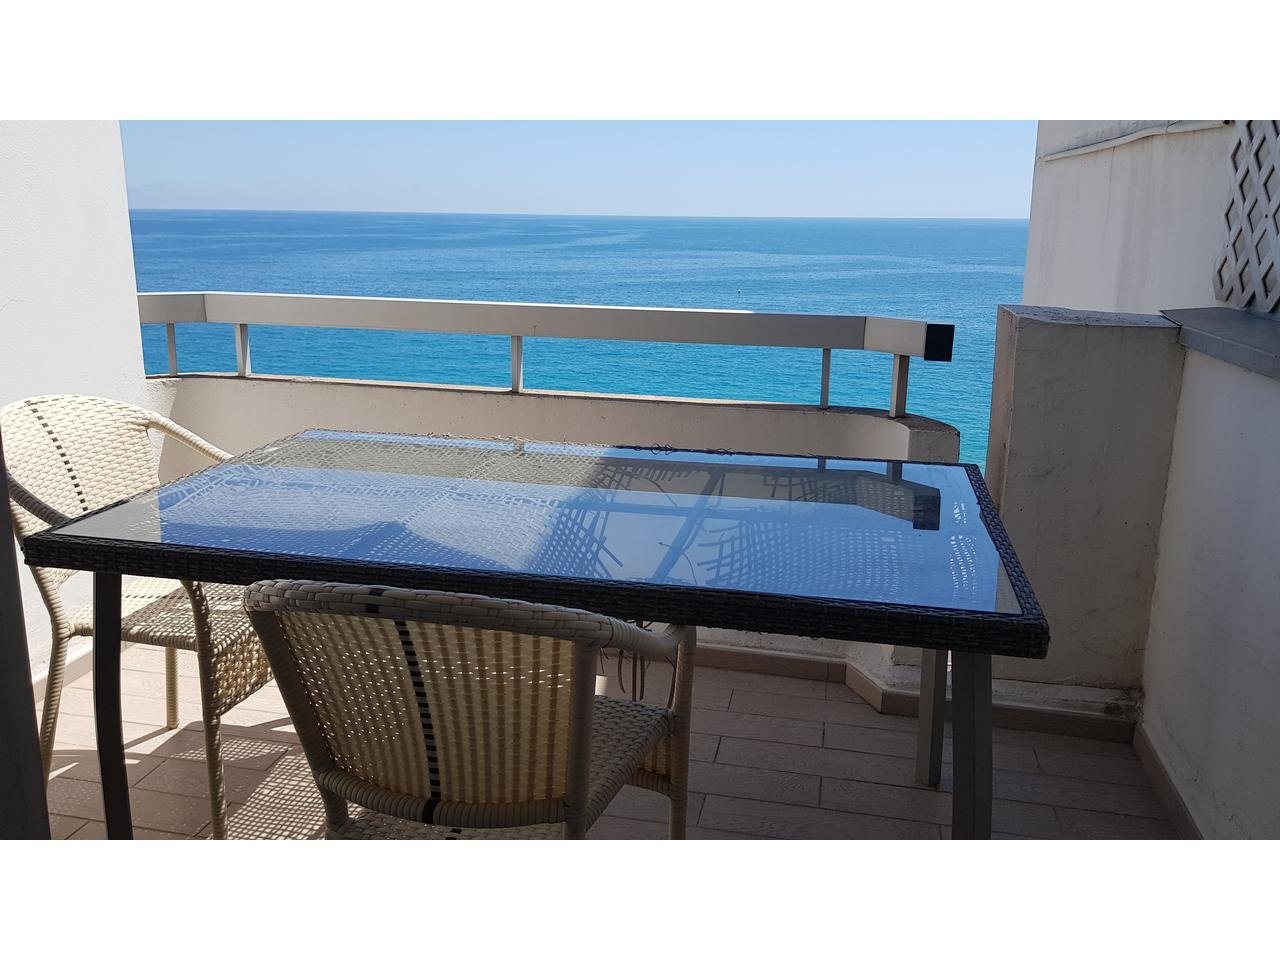 Appartement  2 Rooms 41m2  for sale   429000 €